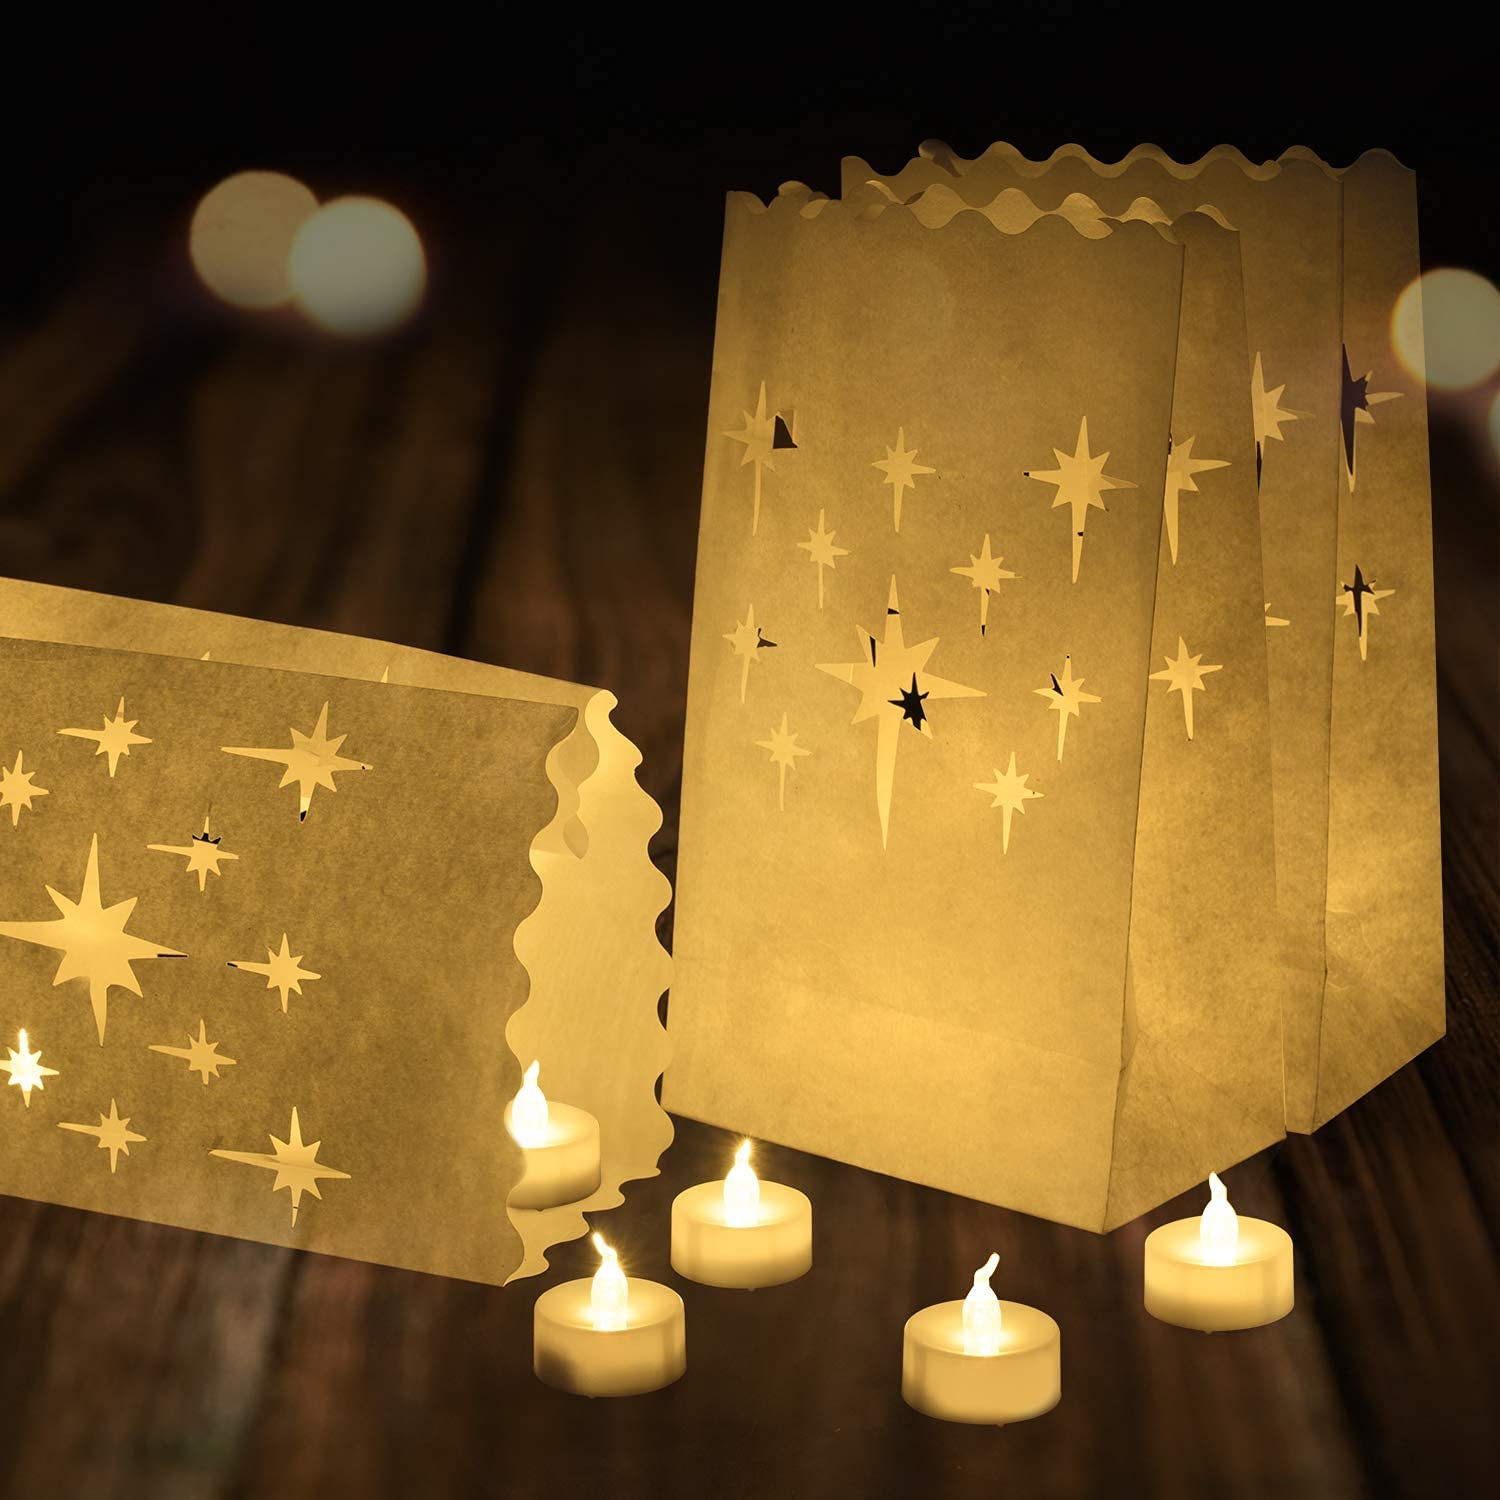 Halloween Electric Fake Candle Max 43% OFF 24 PCS Lum 12 Tea with Quality inspection Lights